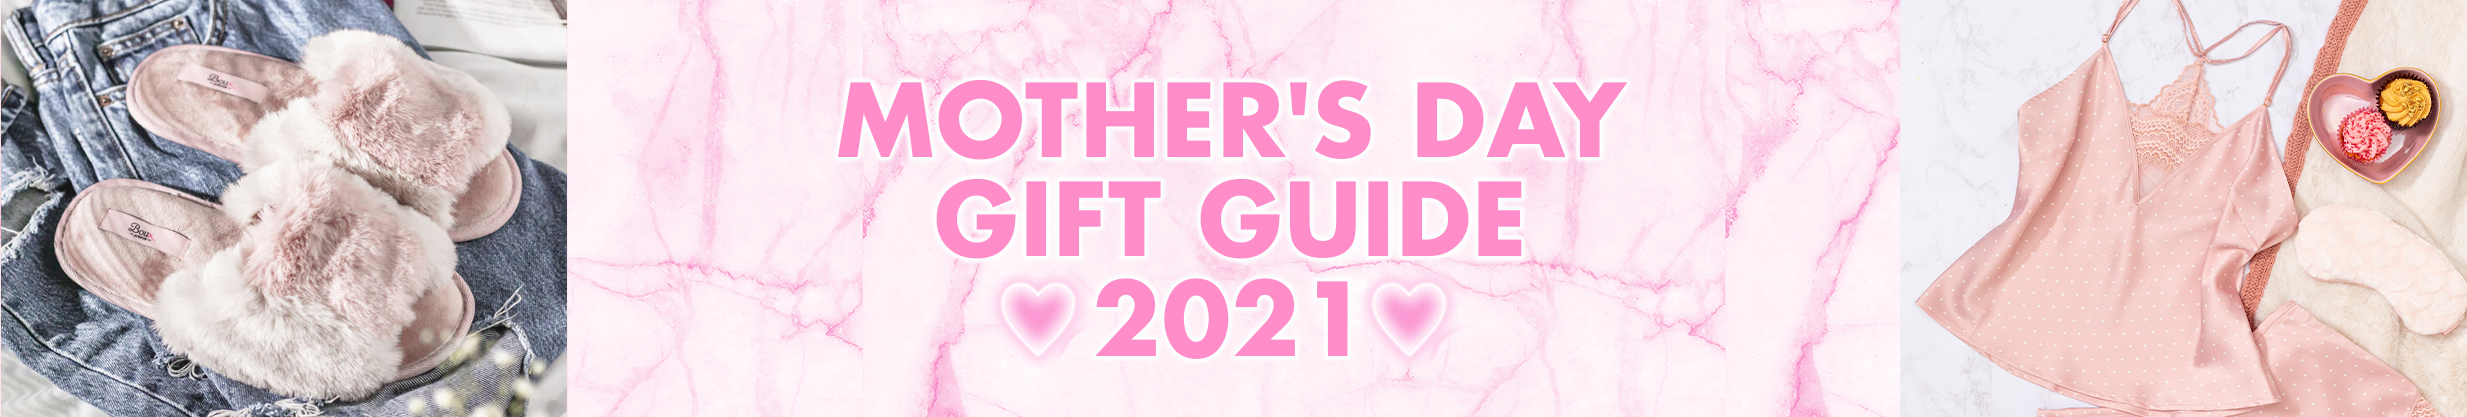 Mother's Day Gift Ideas for 2021 title